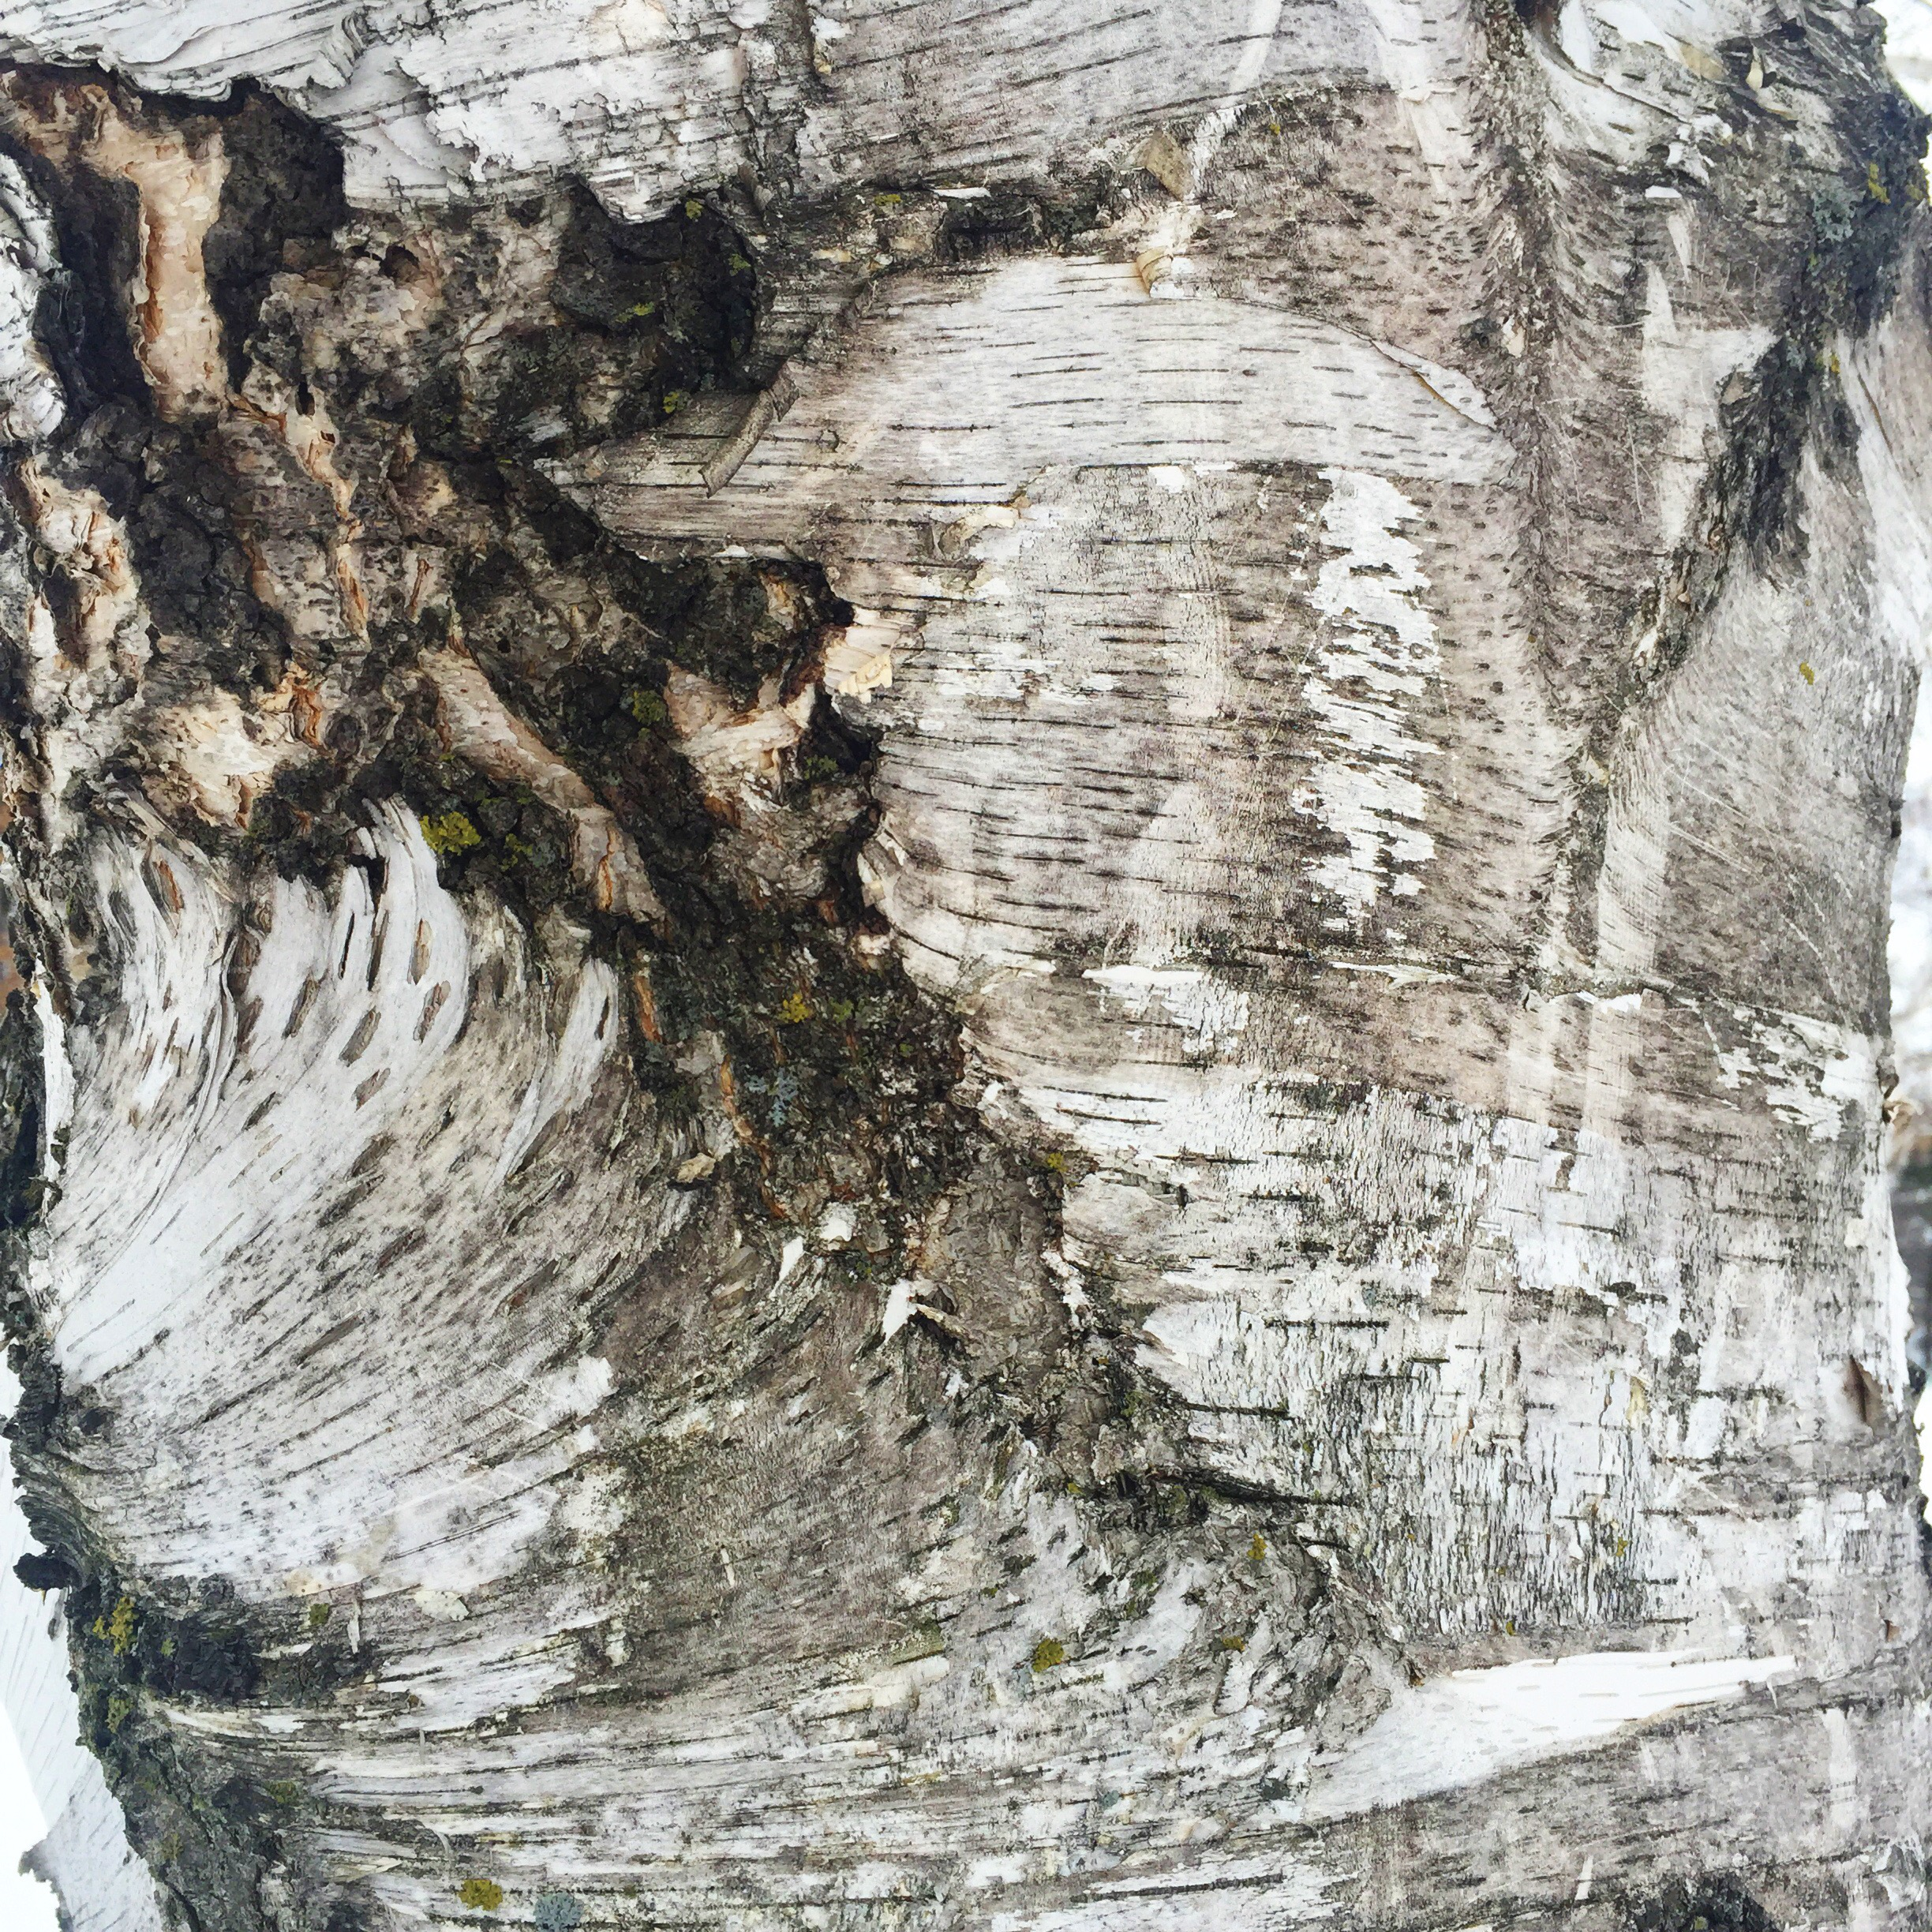 Gorgeous markings of the birch tree